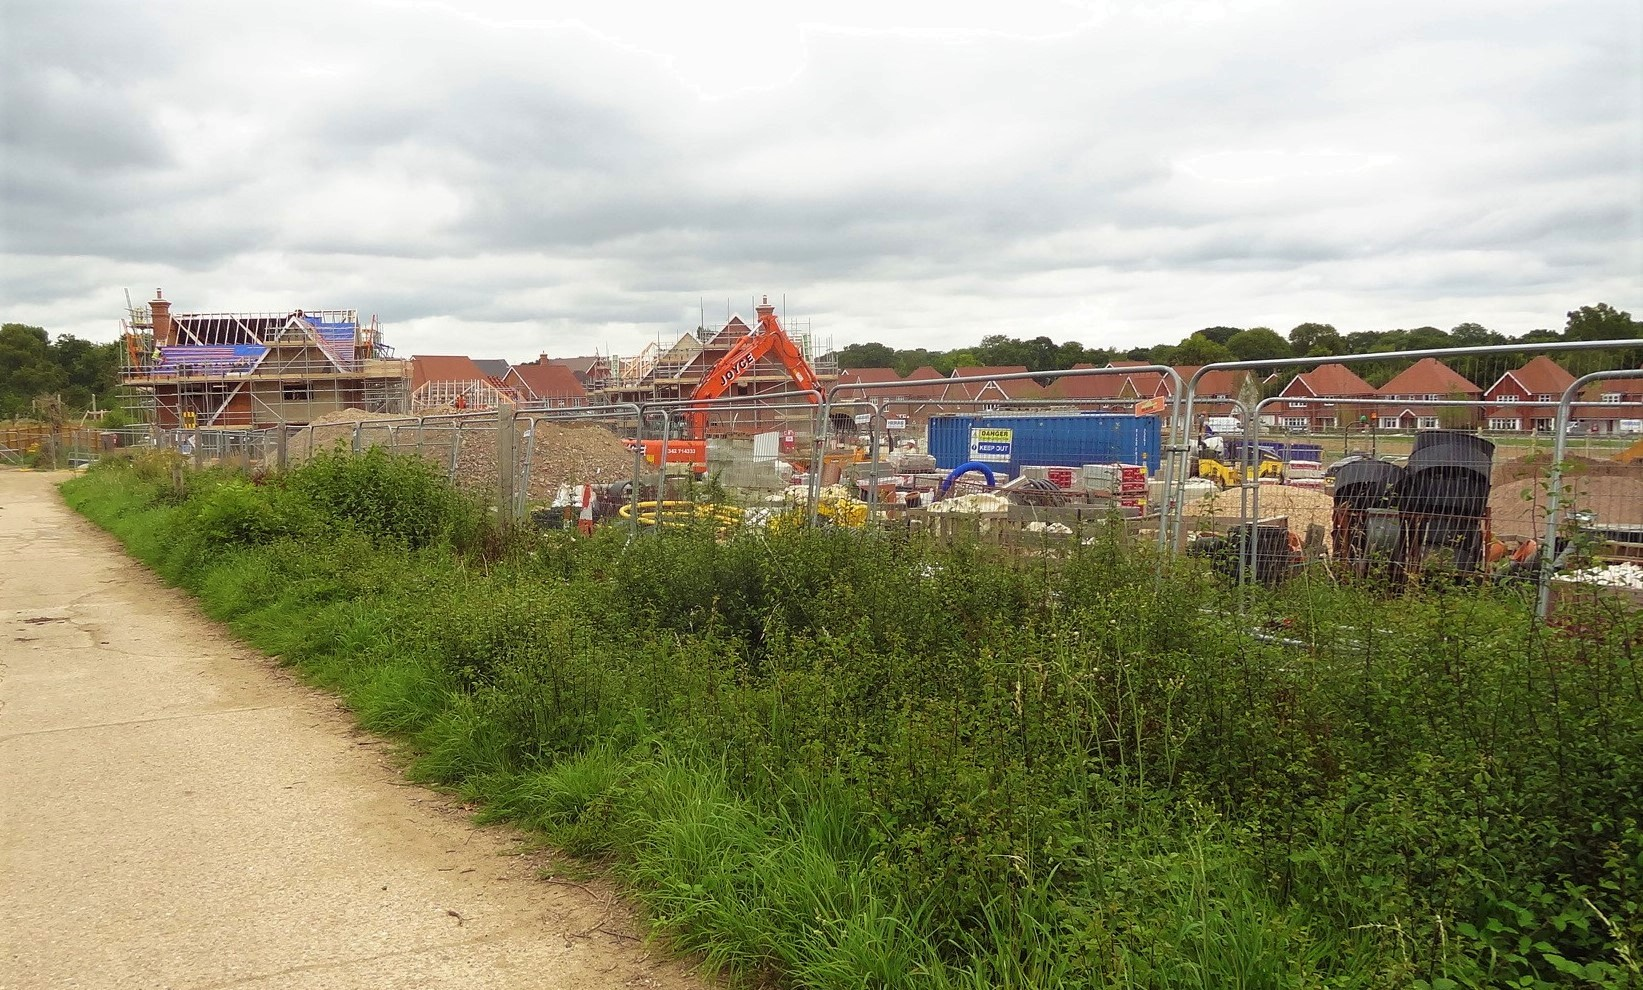 Residential Construction site, UK countryside